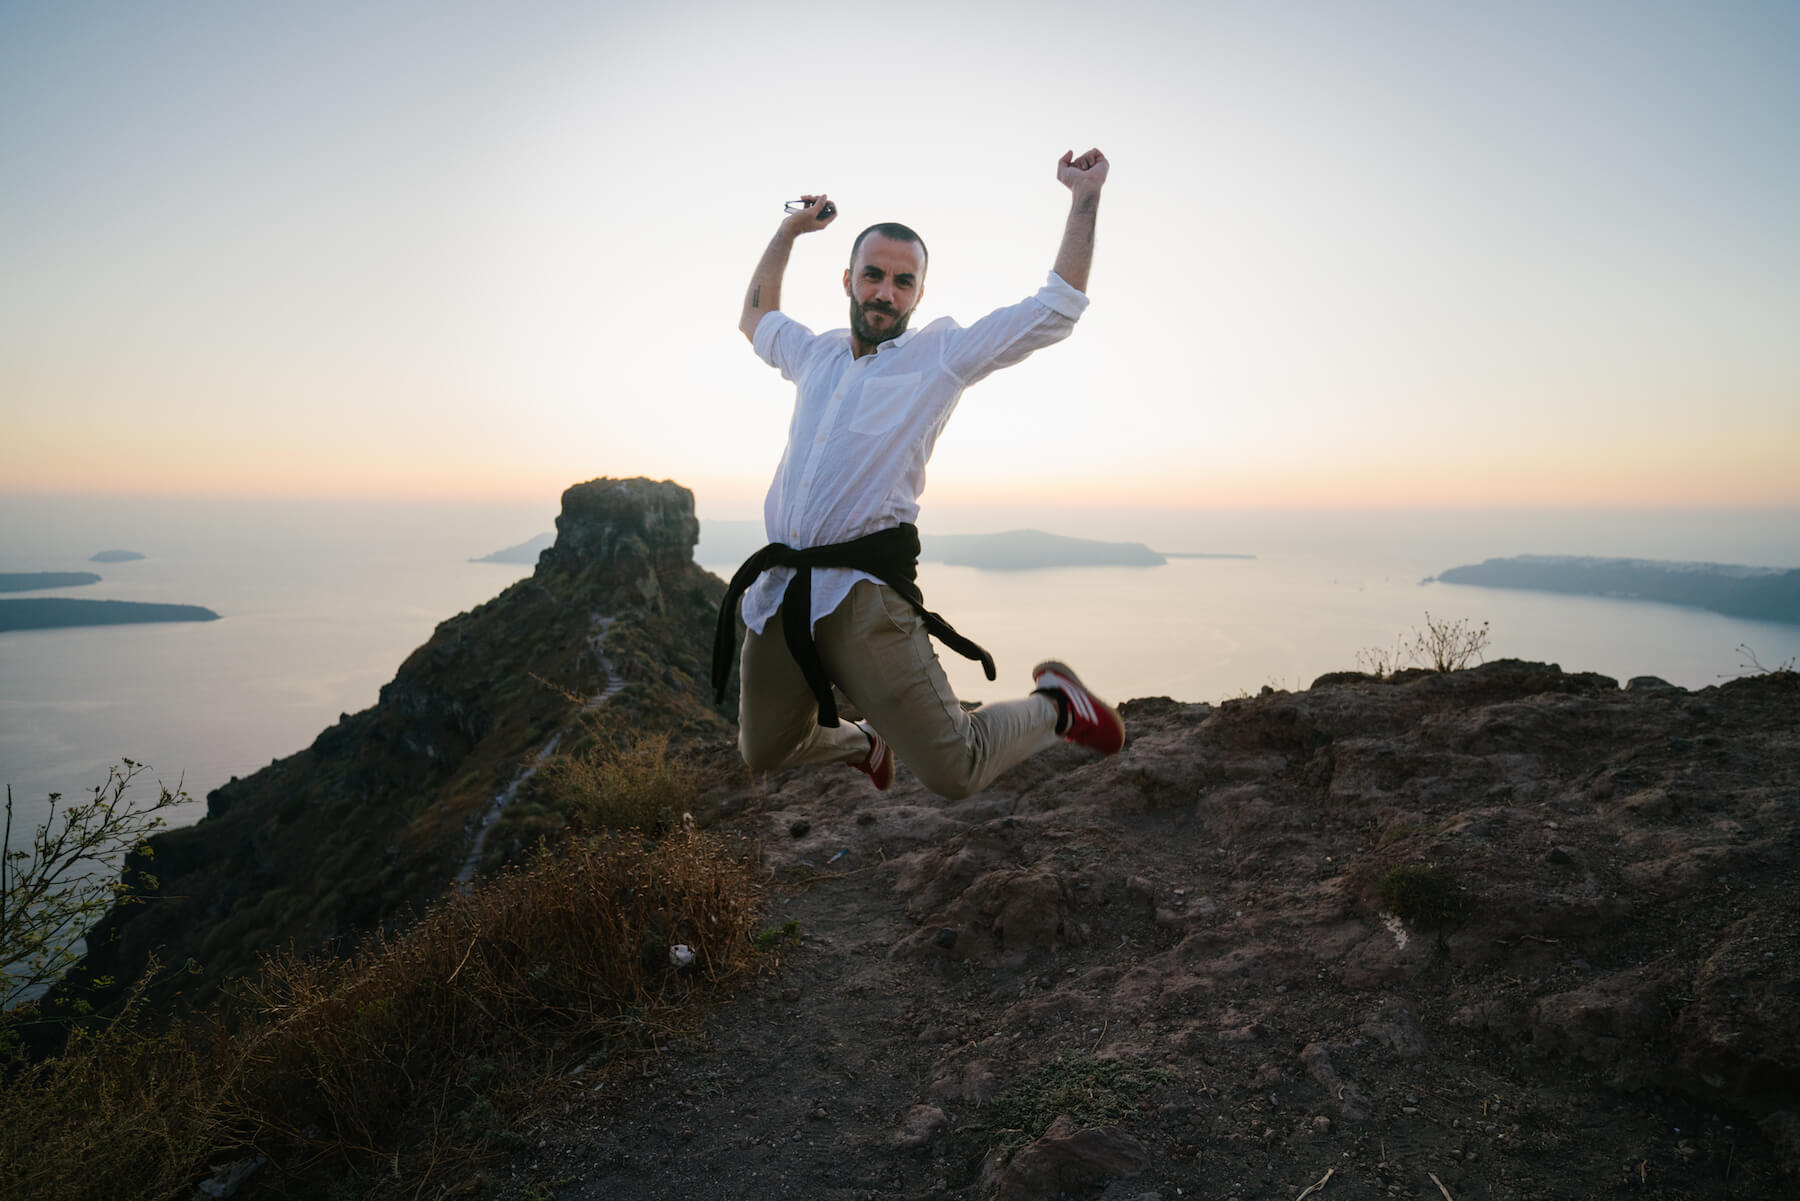 A man jumping for fun at Skaros Rock in Santorini, Greece